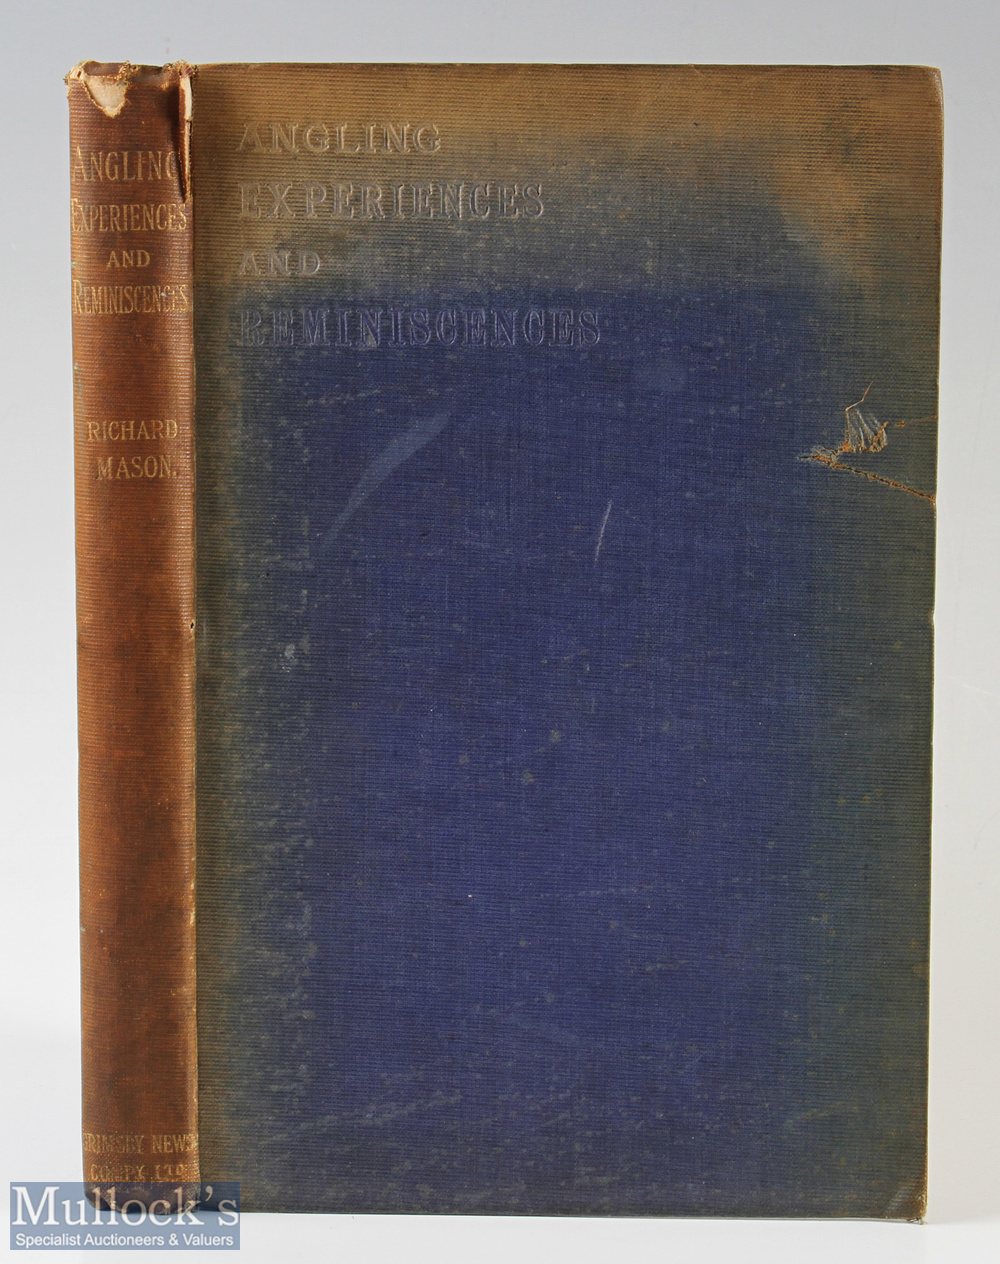 """Mason, Richard – """"Angling Experiences and Reminiscences"""" limited edition of 600 copies c1900,"""